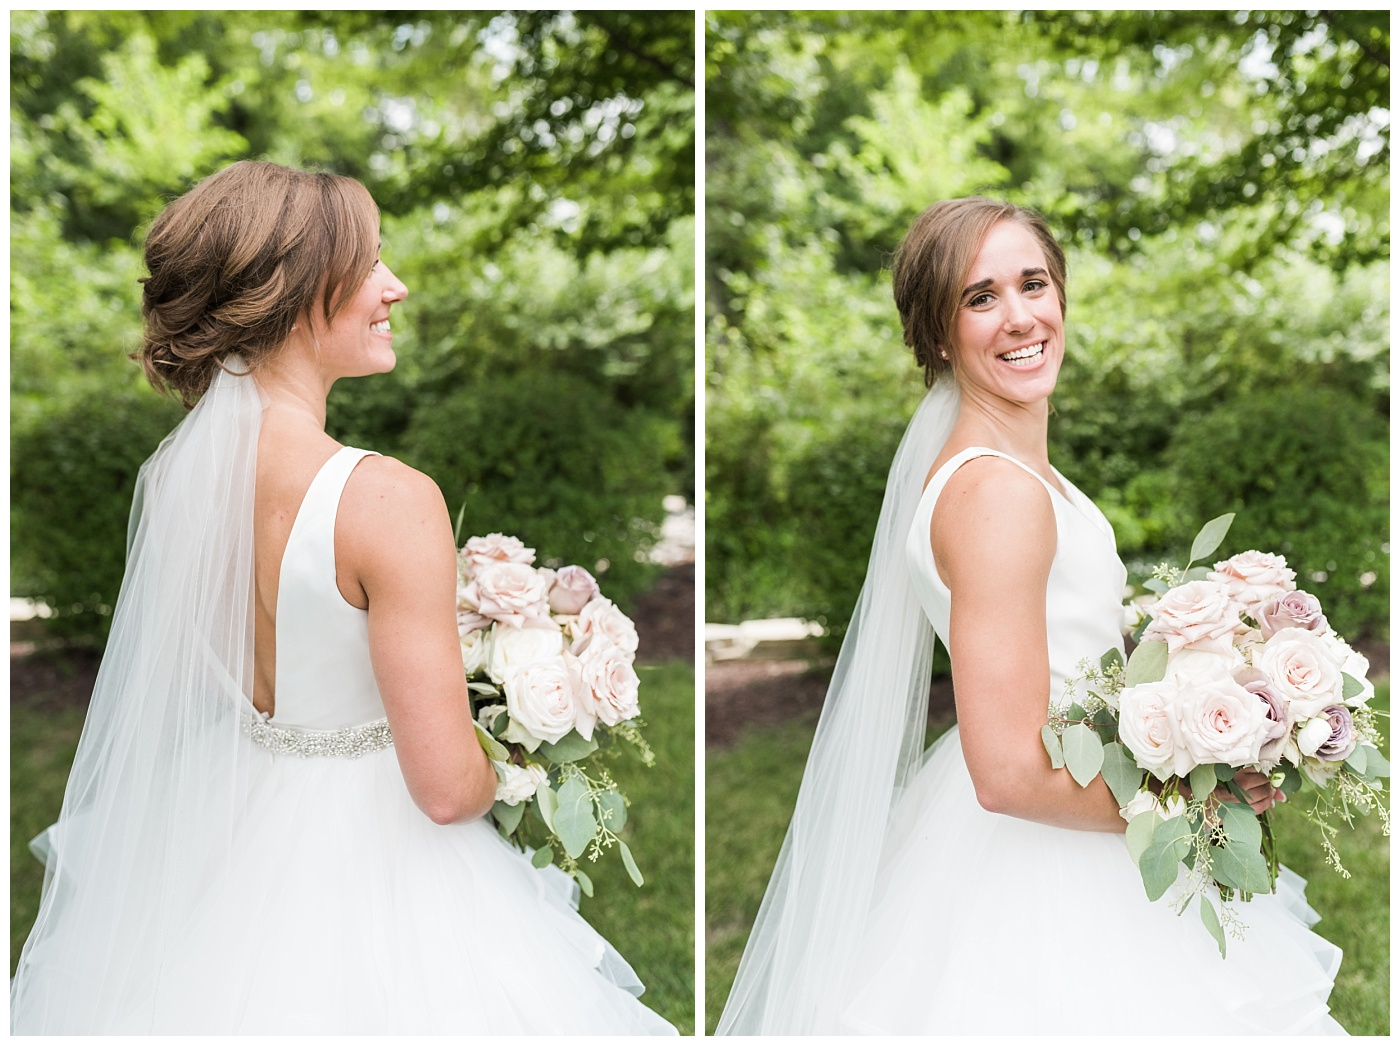 Stephanie Marie Photography Newman Catholic Center Ceremony Bella Sala Reception Tiffin Iowa City Wedding Photographer Chelsey Justin Meyers_0020-1.jpg